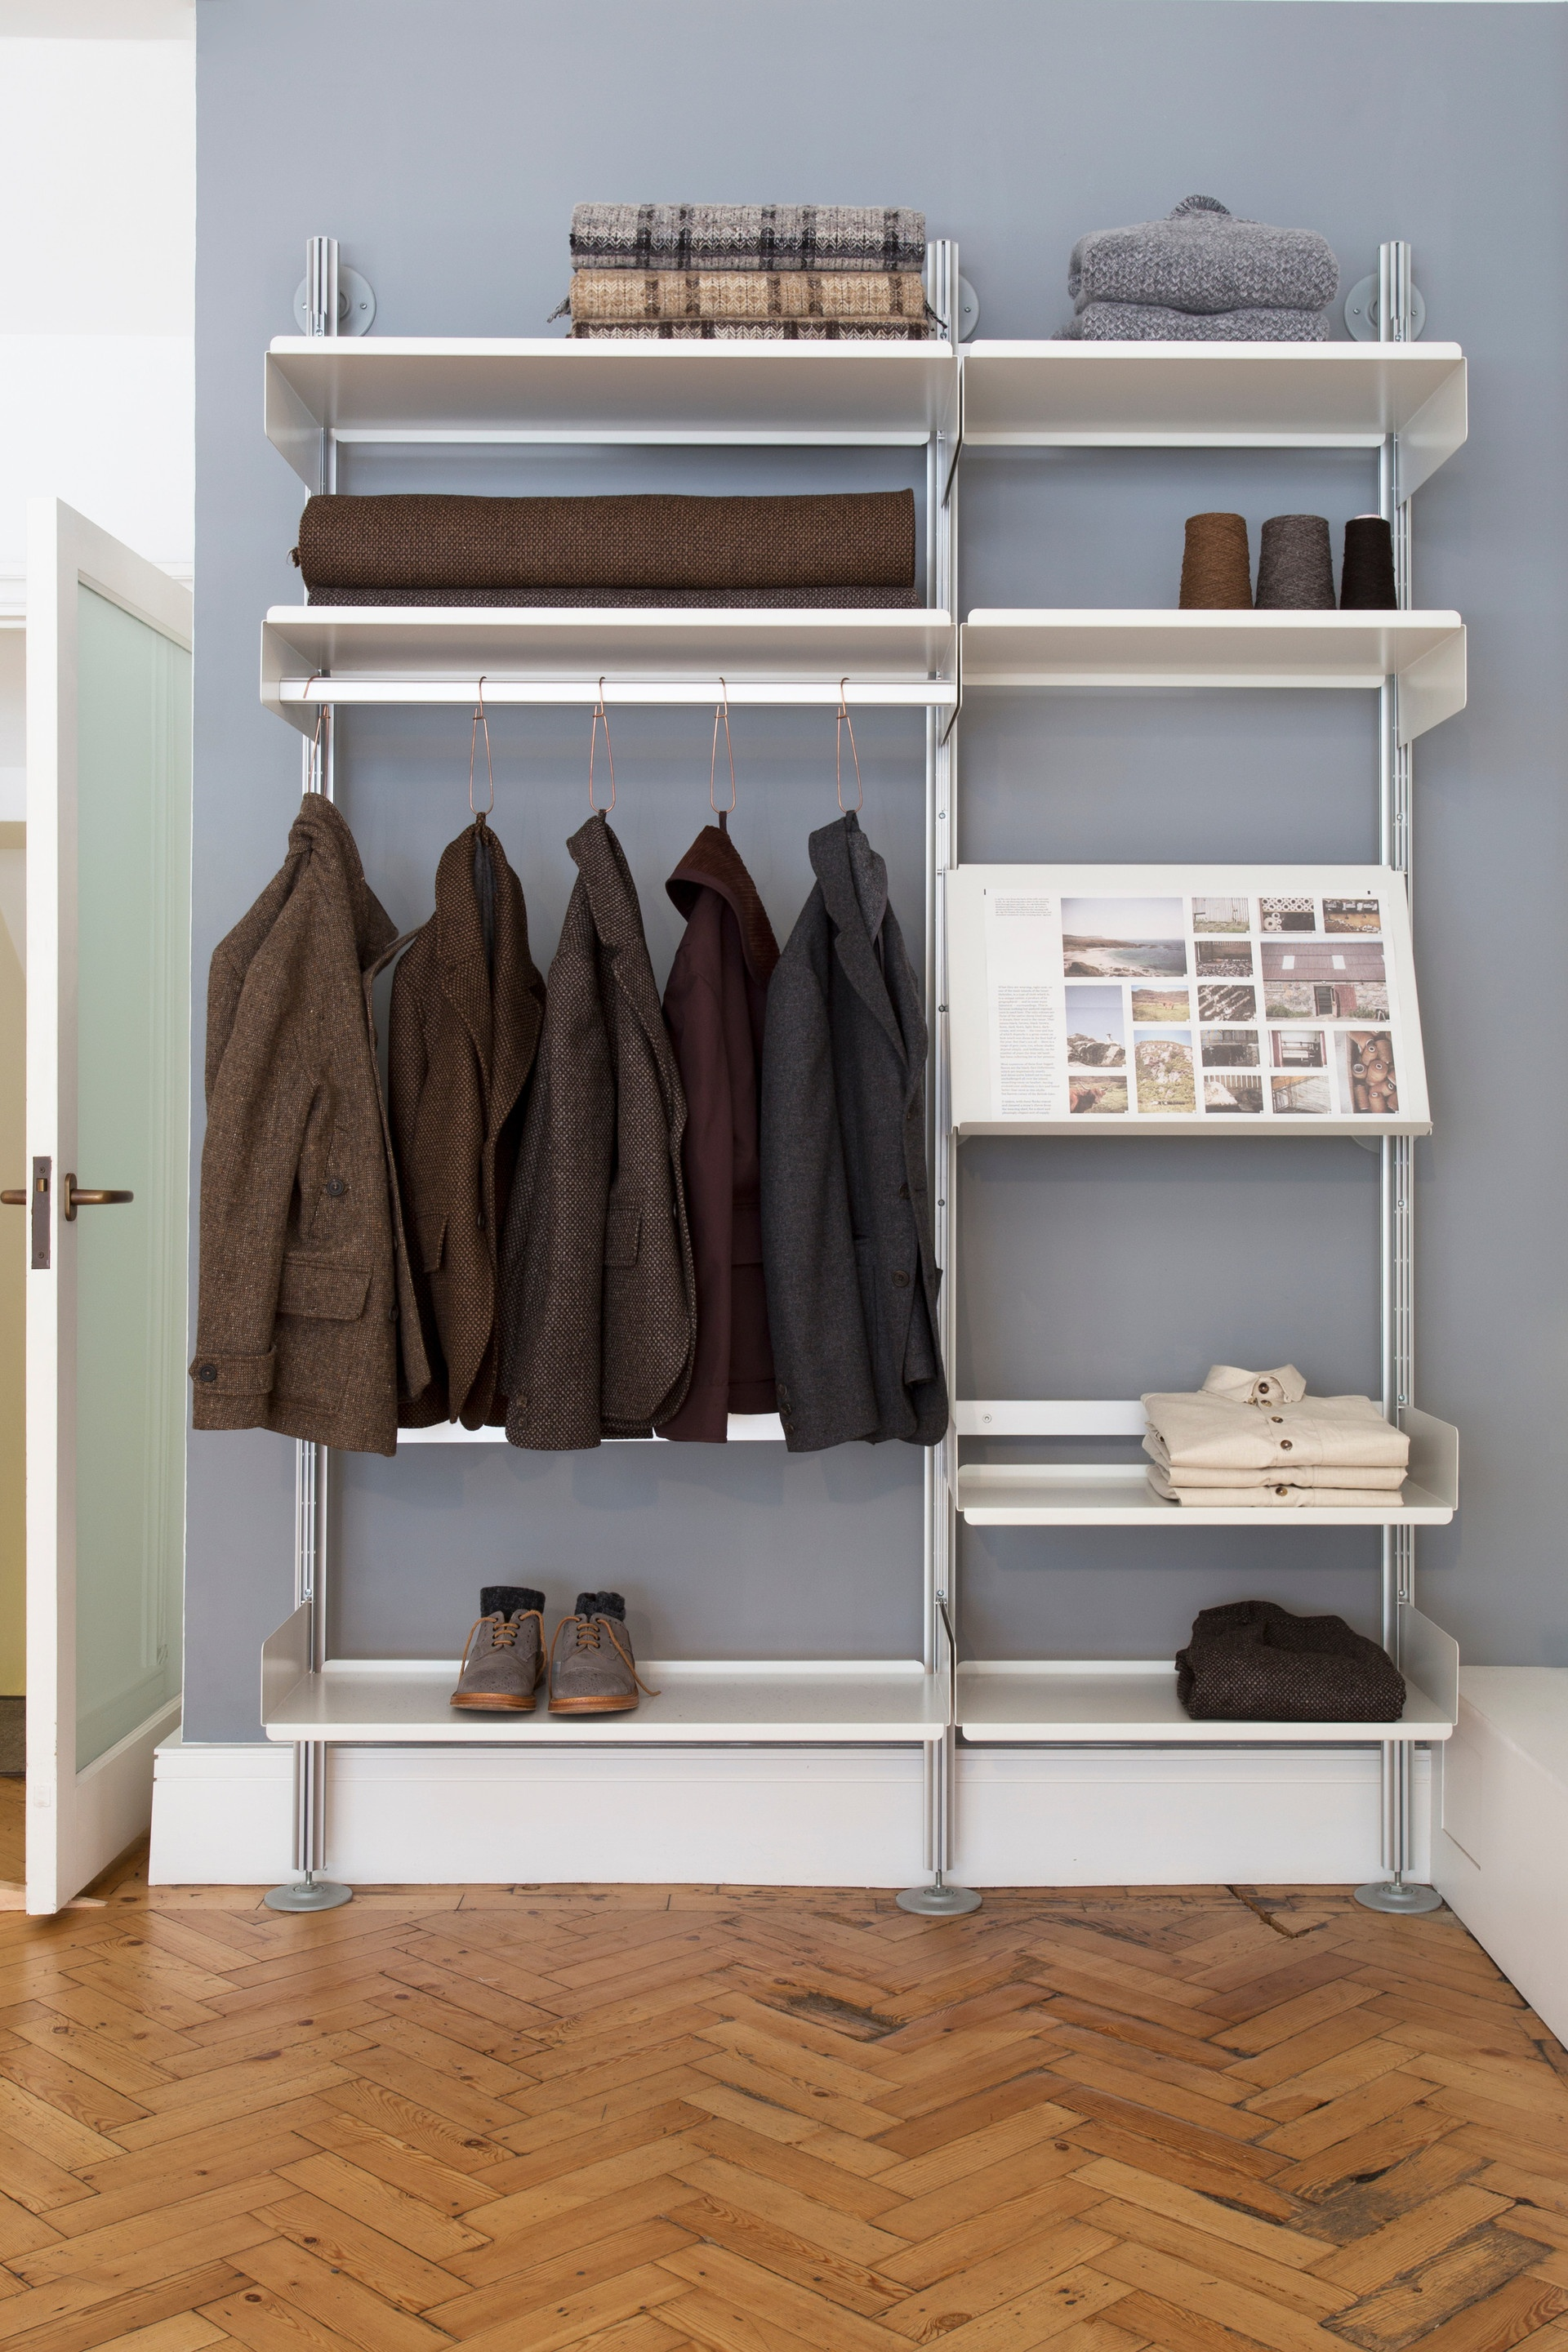 A semi-wall mounted shelving system with shelves and a hanging rail that can be rearranged at will